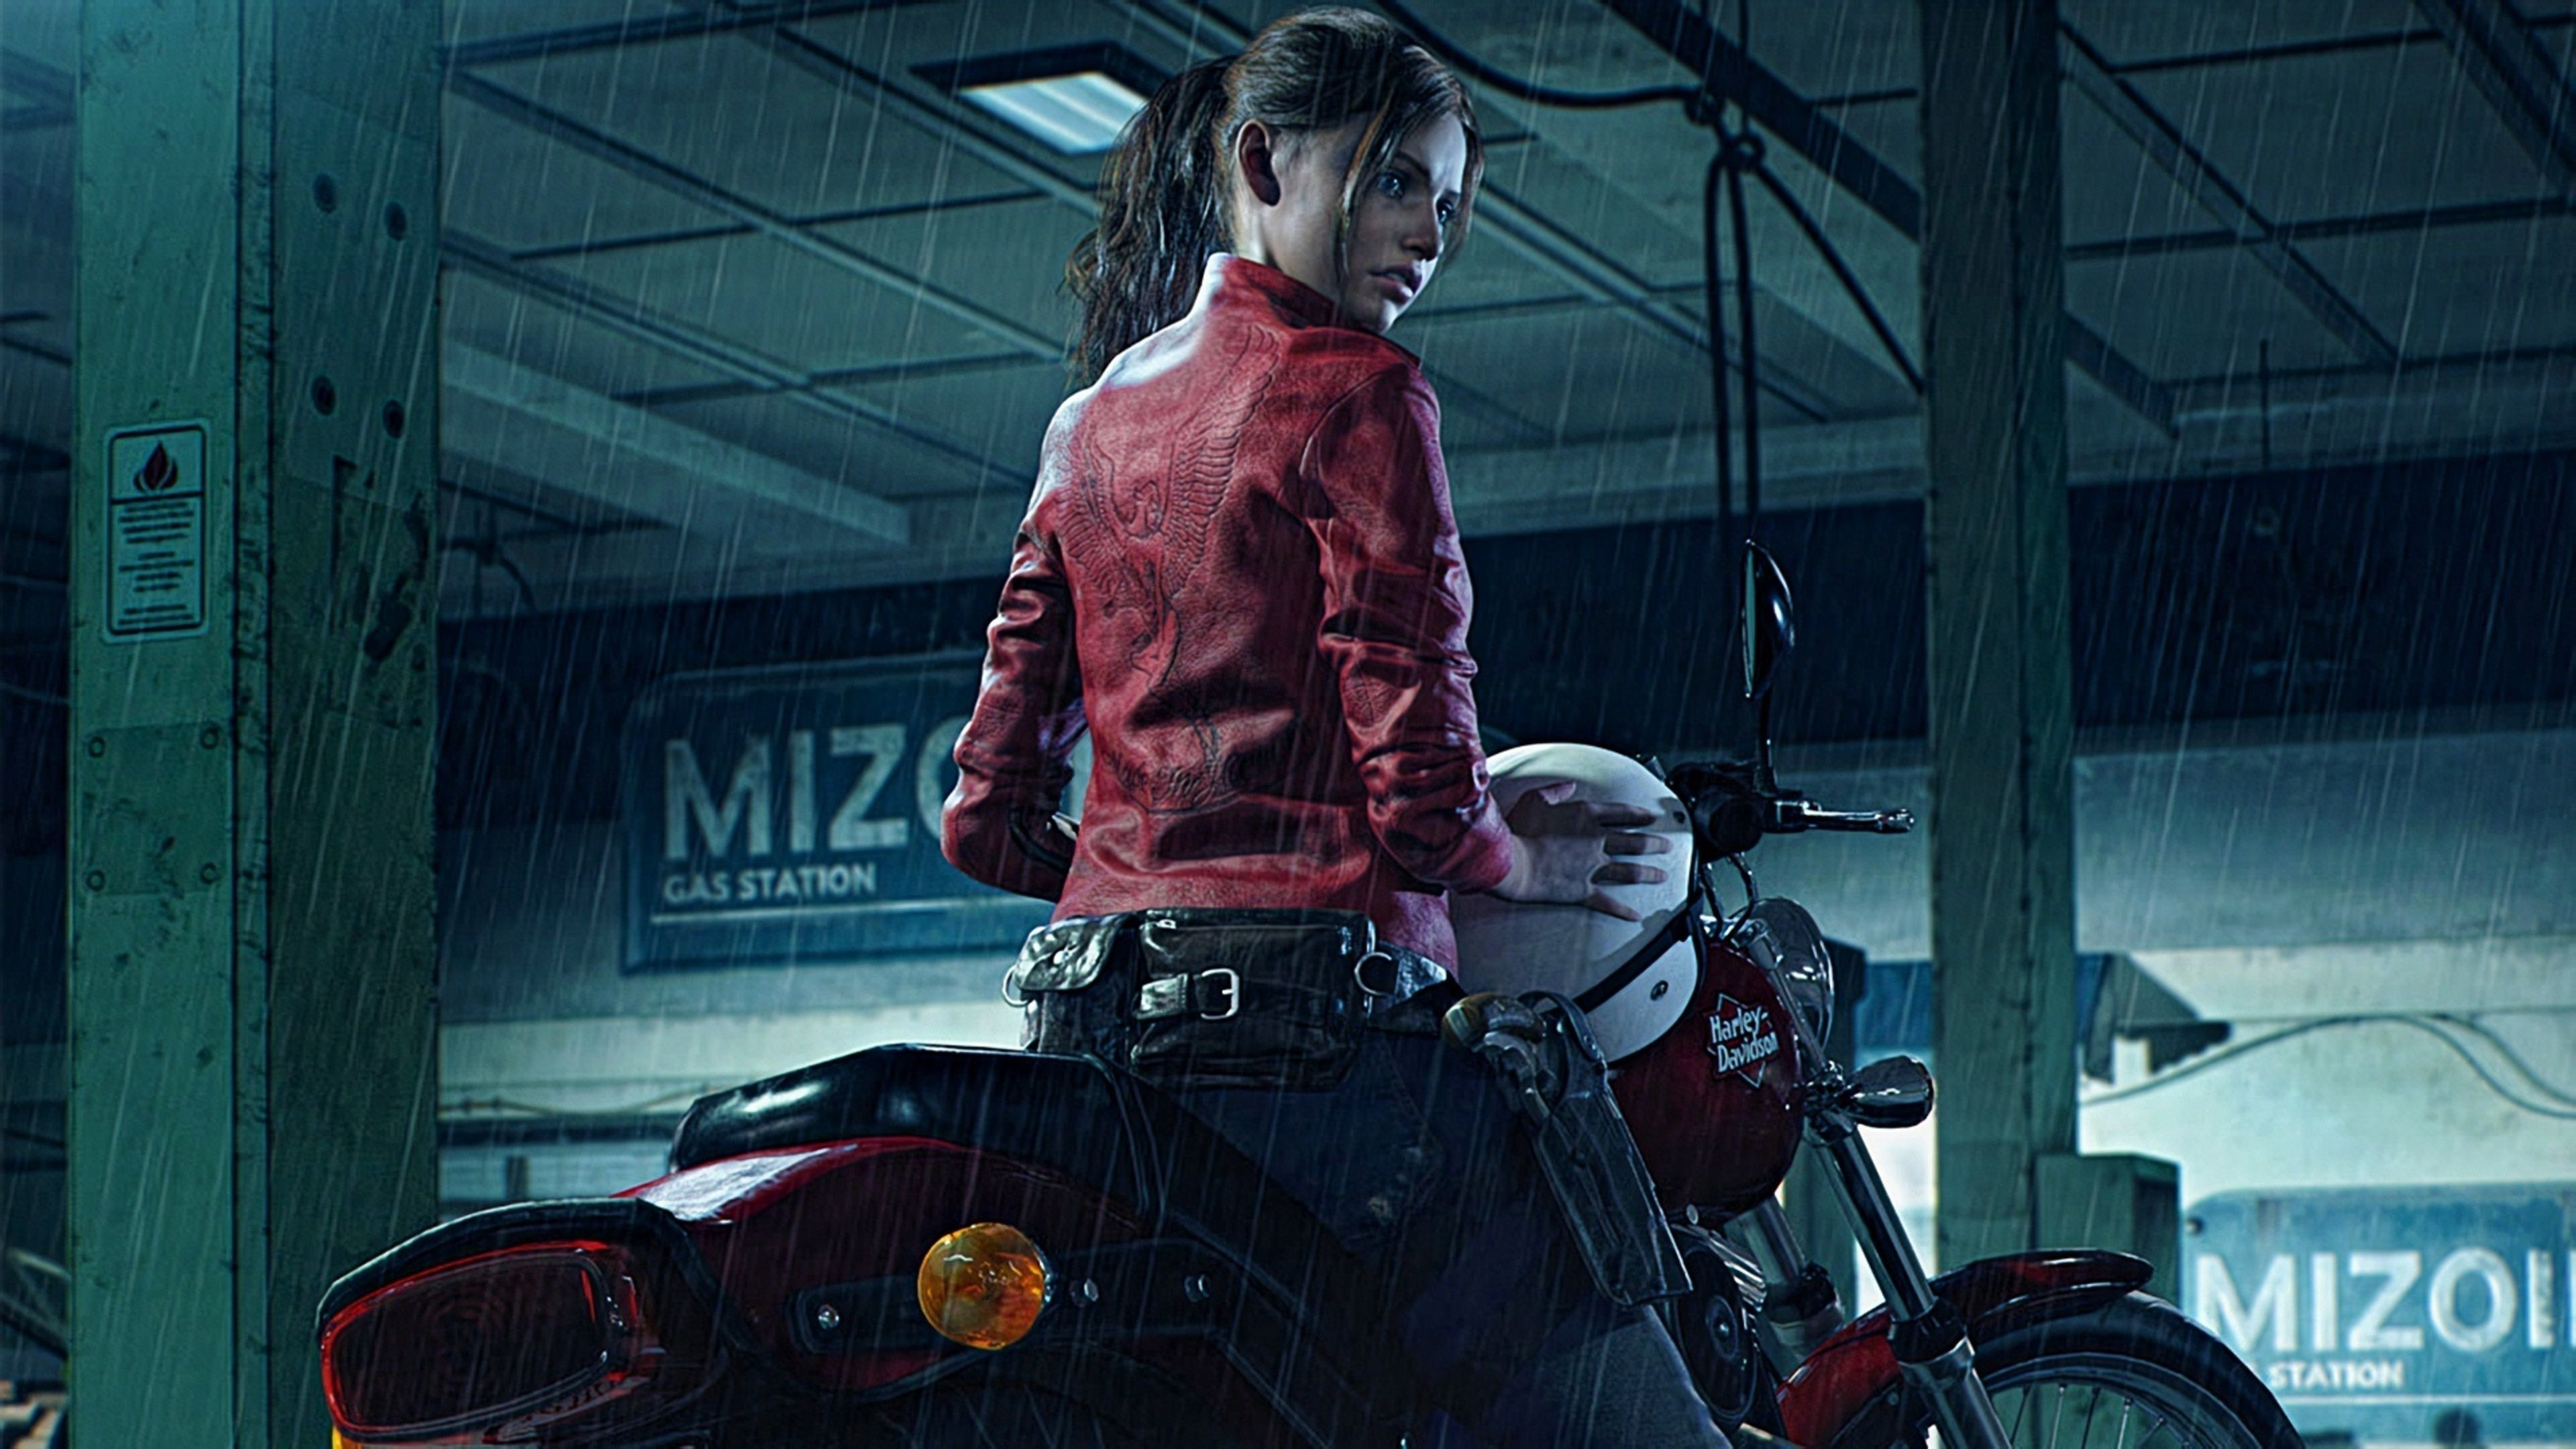 Res: 3840x2160, Resident Evil 2 2019 Claire Redfield Harley Davidson resident evil 2  wallpapers, hd-wallpapers, games wallpapers, claire redfield wallpapers, 4k- wallpapers, ...